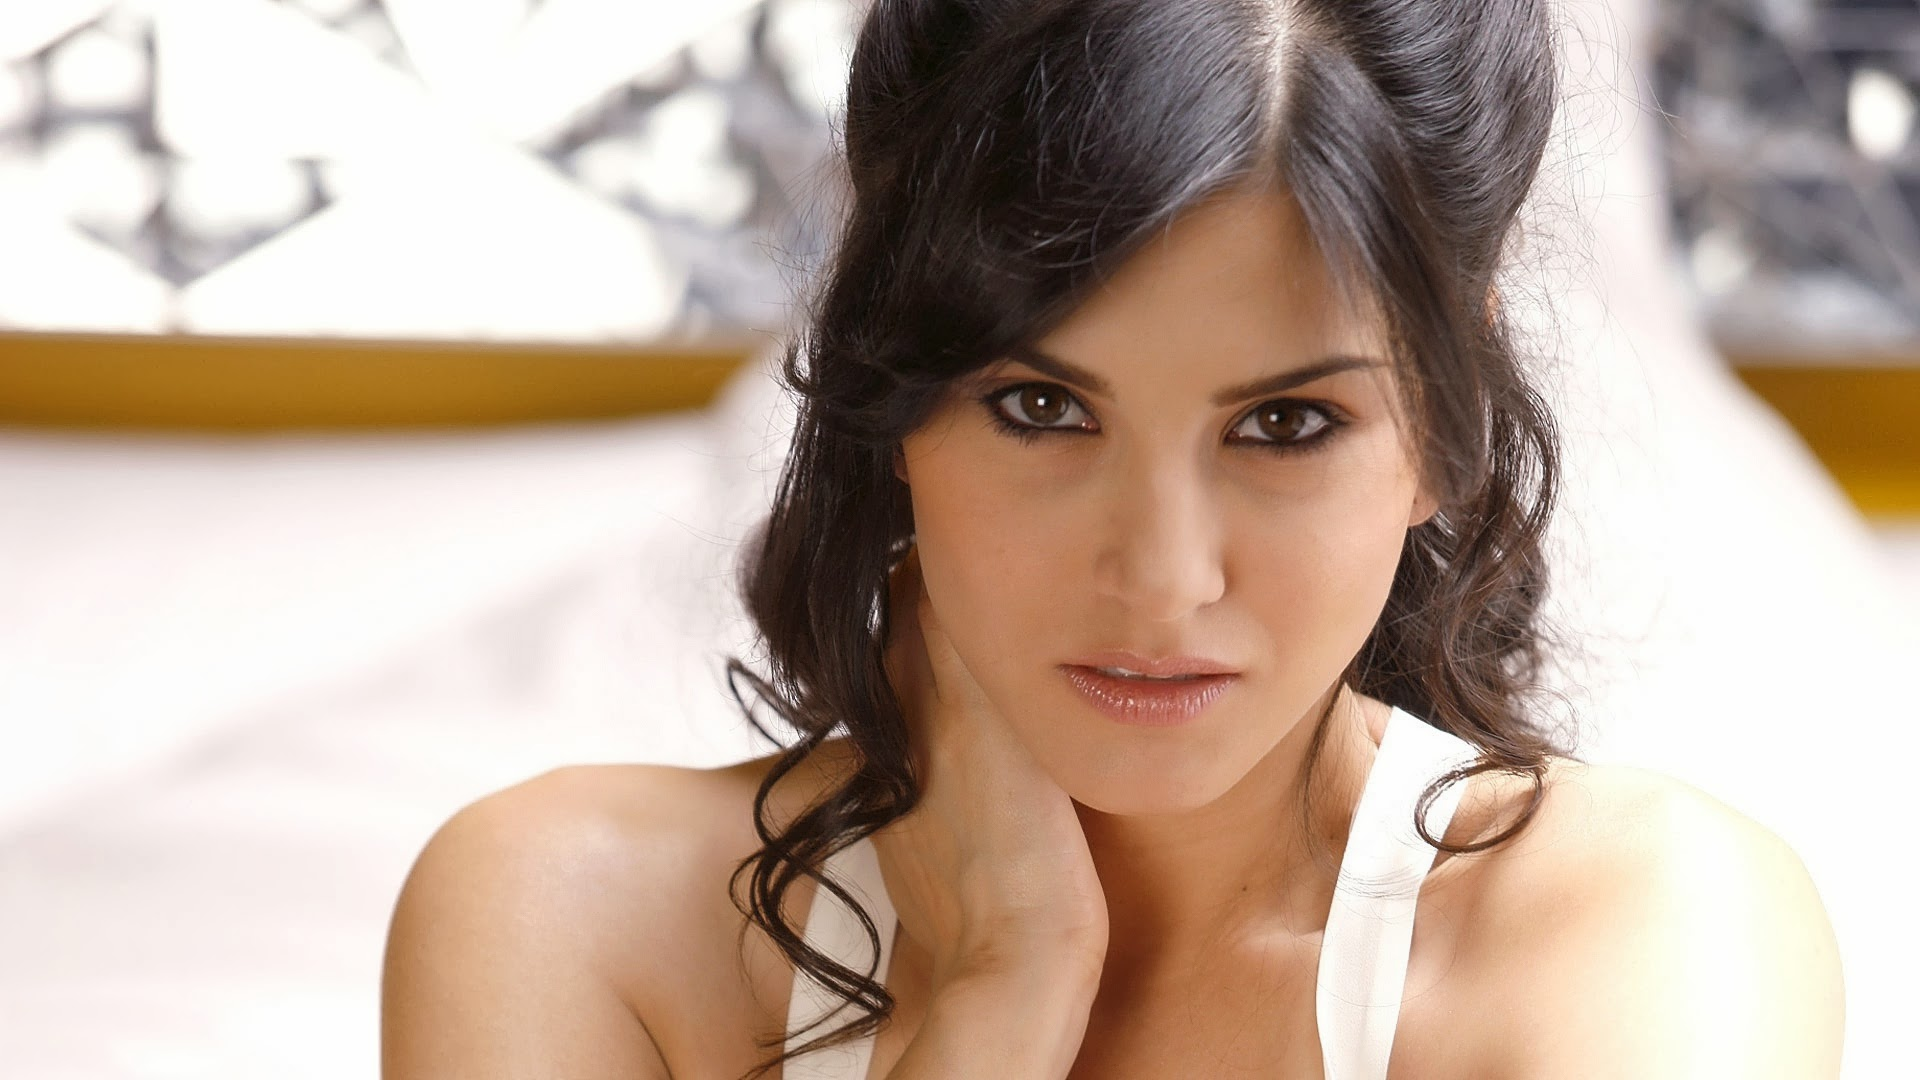 Sunny Leone In Jism 2 Hd Wallpaper Hd Wallpapers High Quality